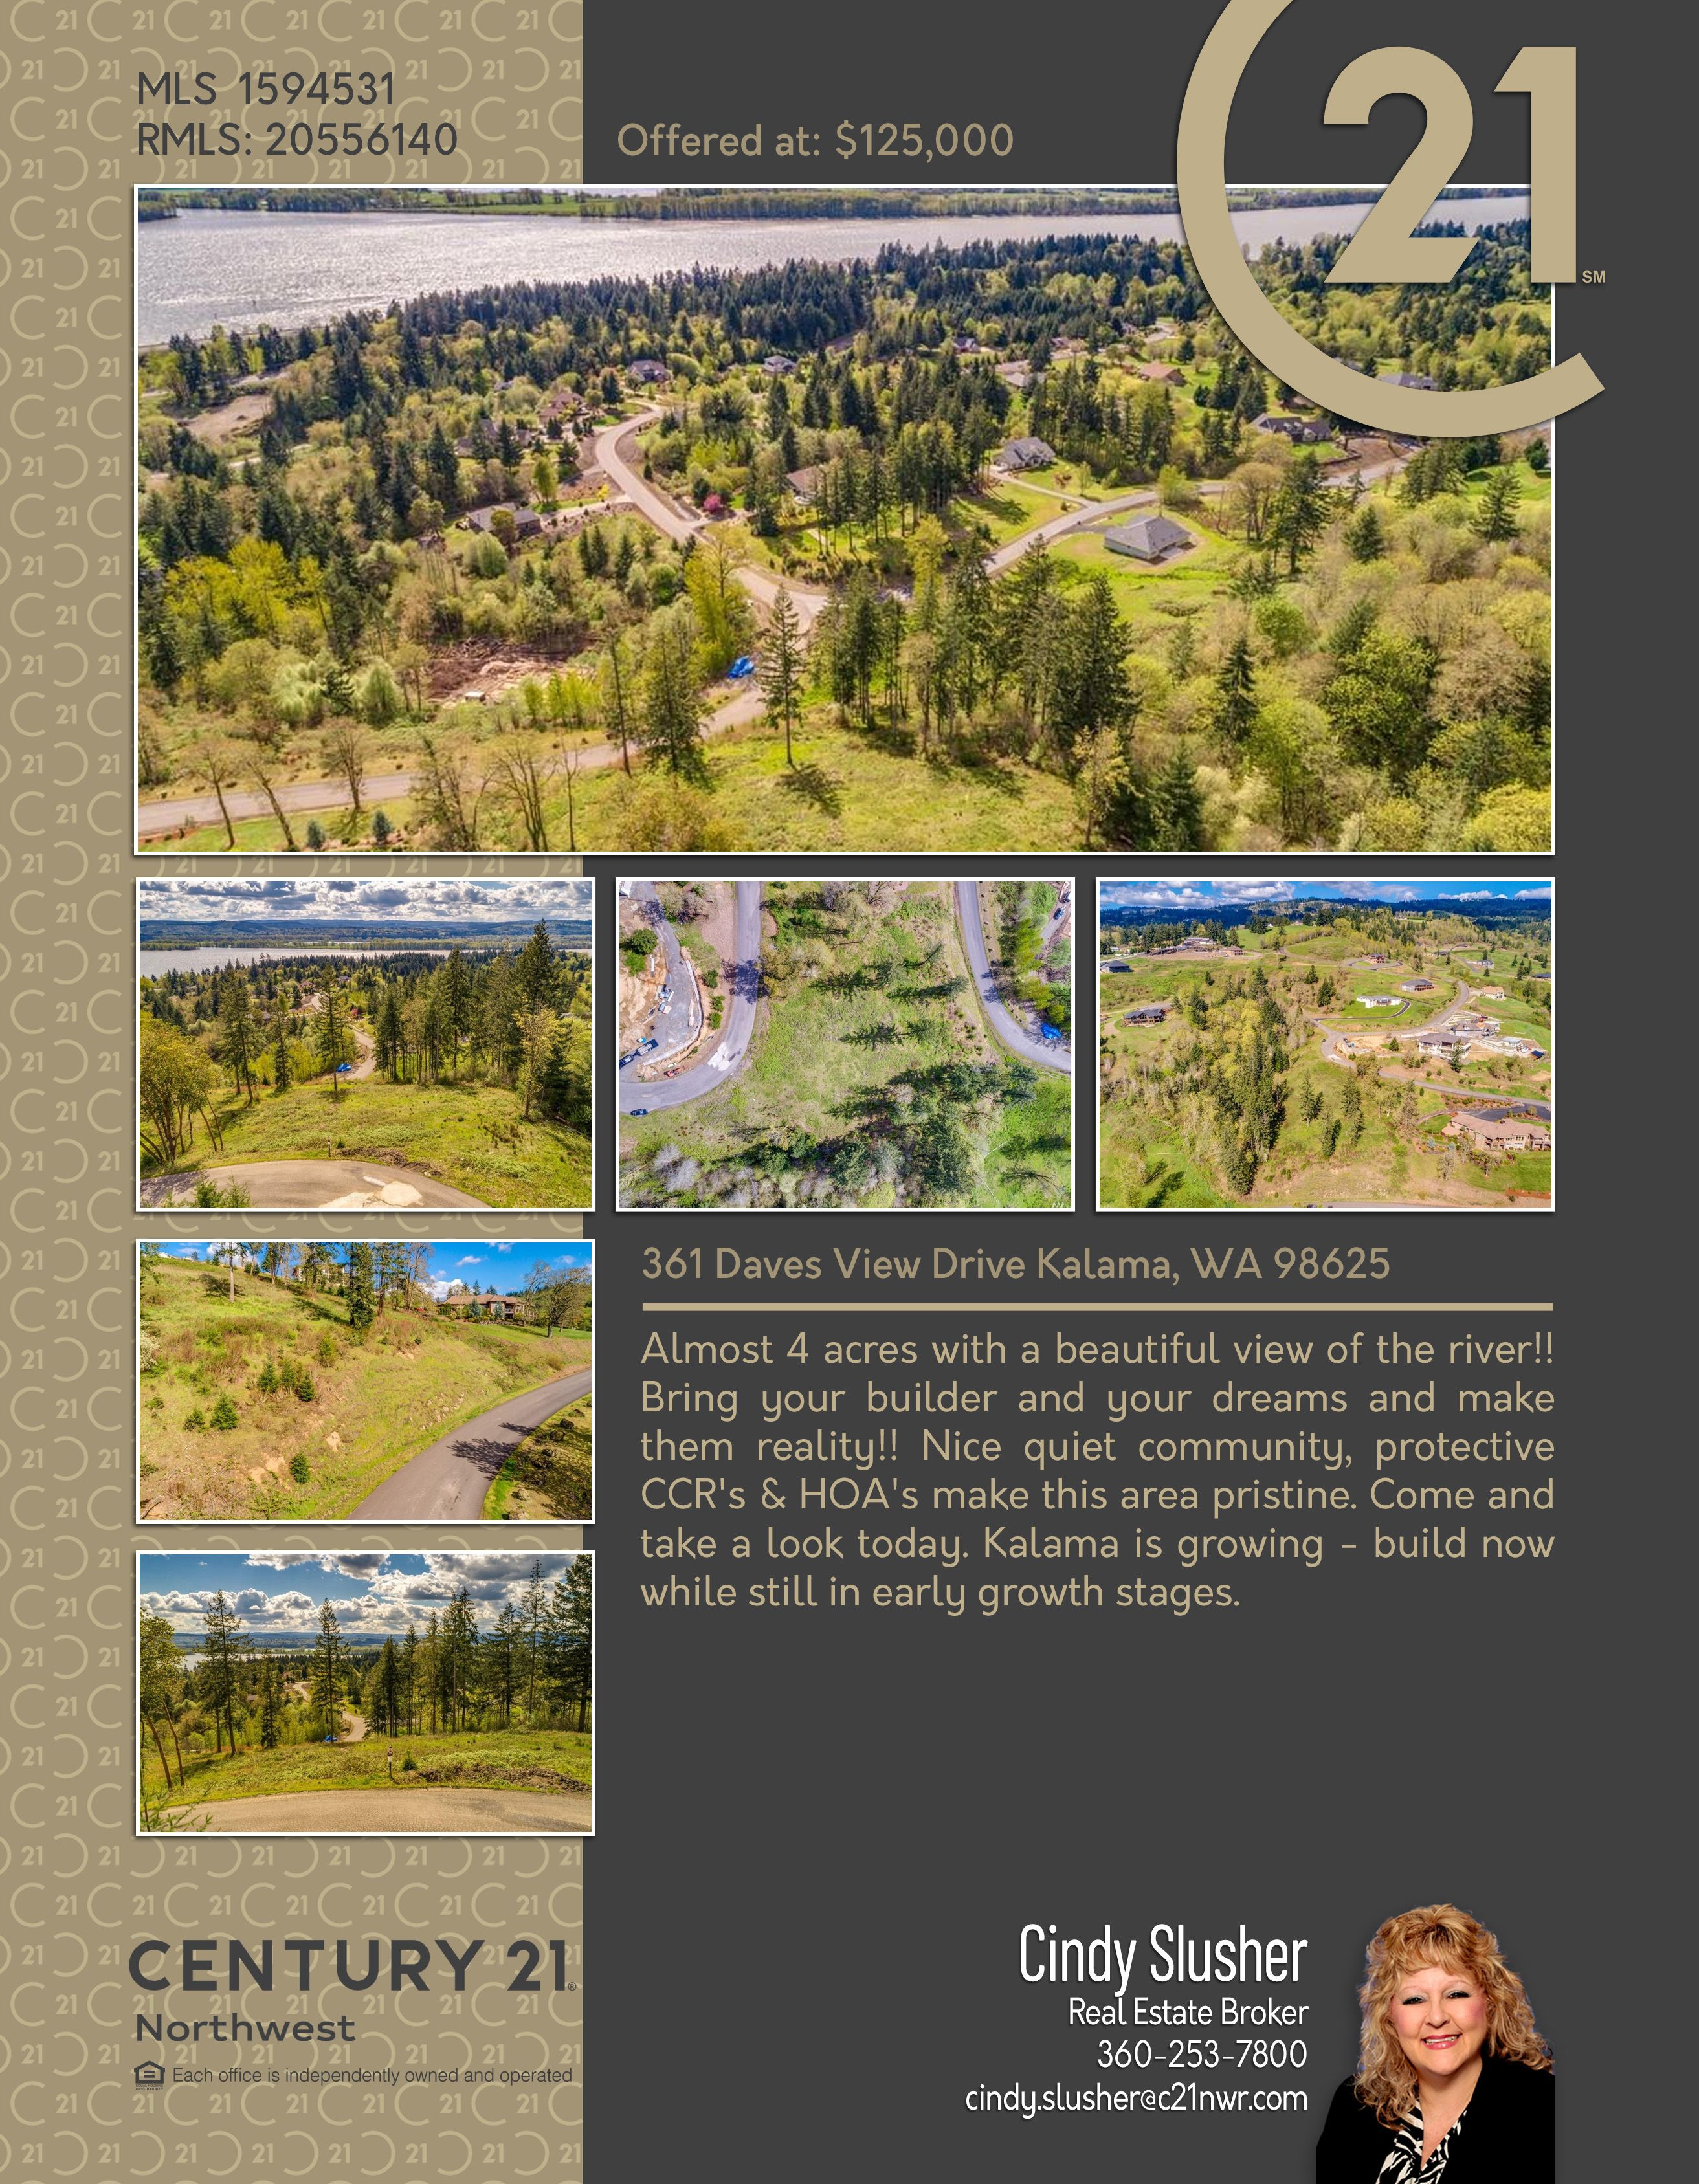 Newactive Almost 4 Acres With A Beautiful View Of The River Bring Your Builder And Your Dreams And Make Them Reality Nice Qui In 2020 Beautiful Views Views Kalama